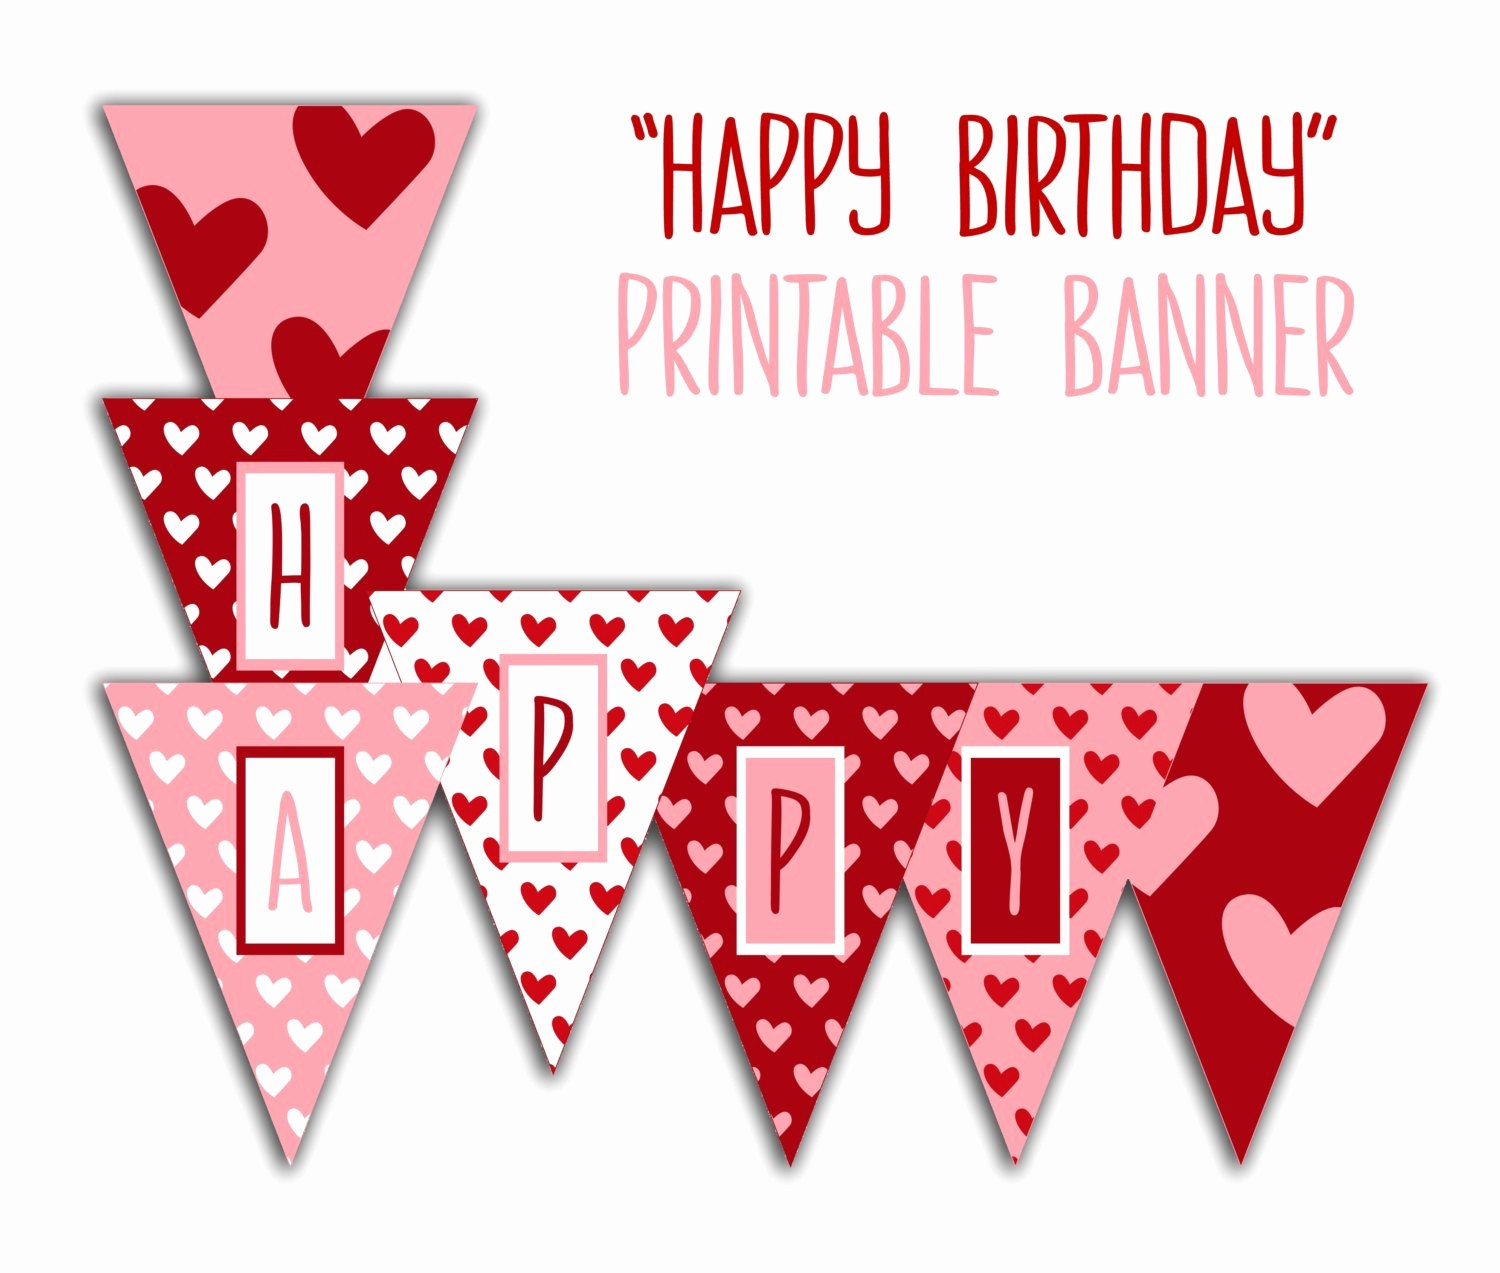 Happy Birthday Banner Print Out Awesome Happy Birthday Banner Birthday Party Printable Sign Red